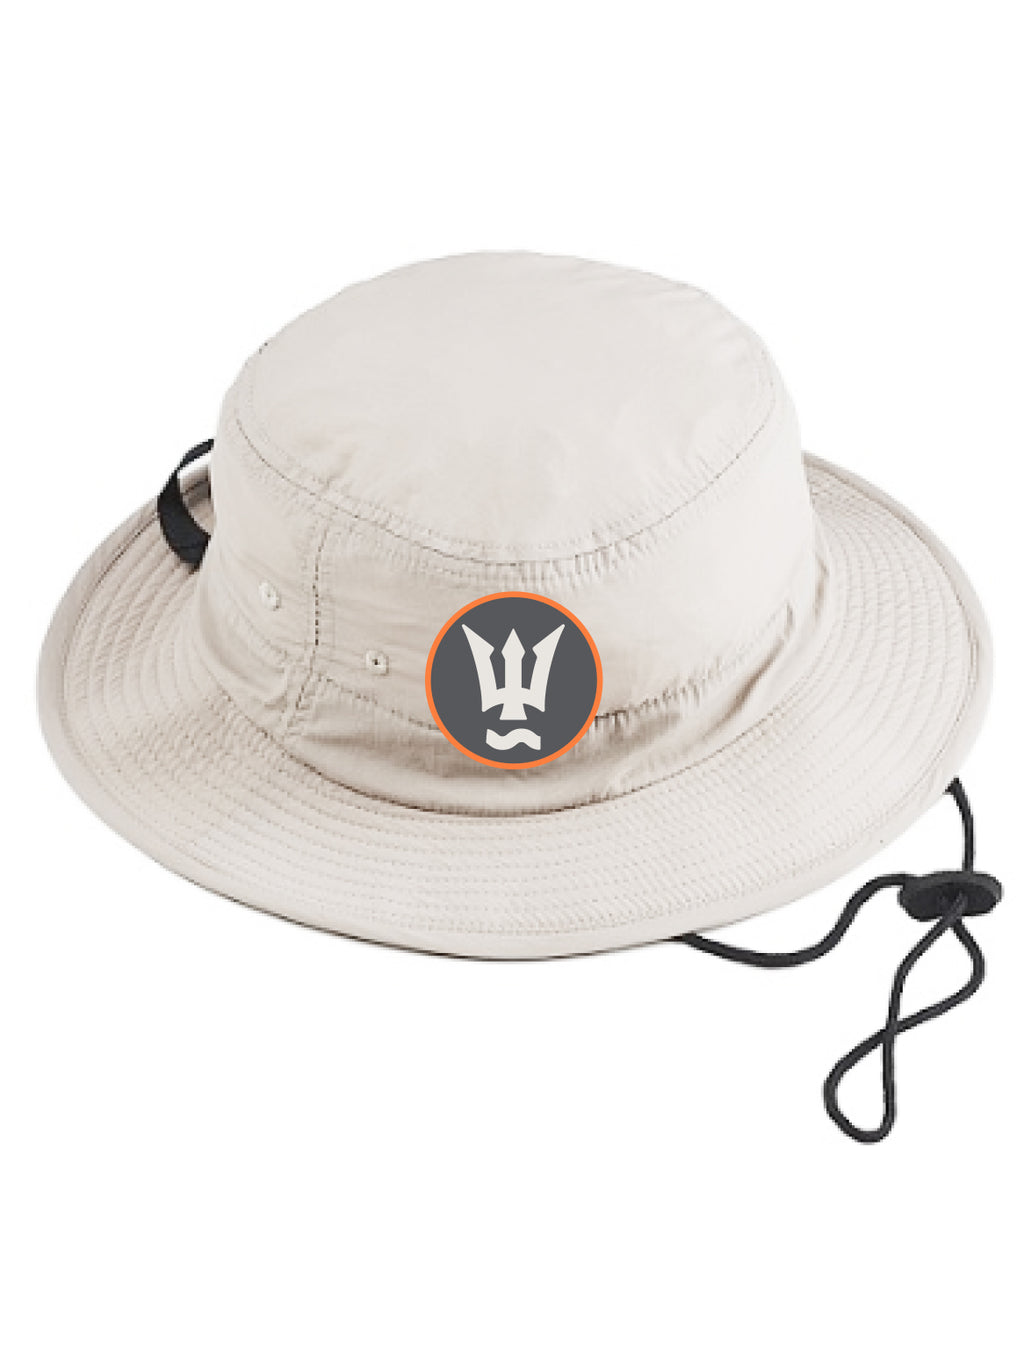 Wonderfront Bucket Hat